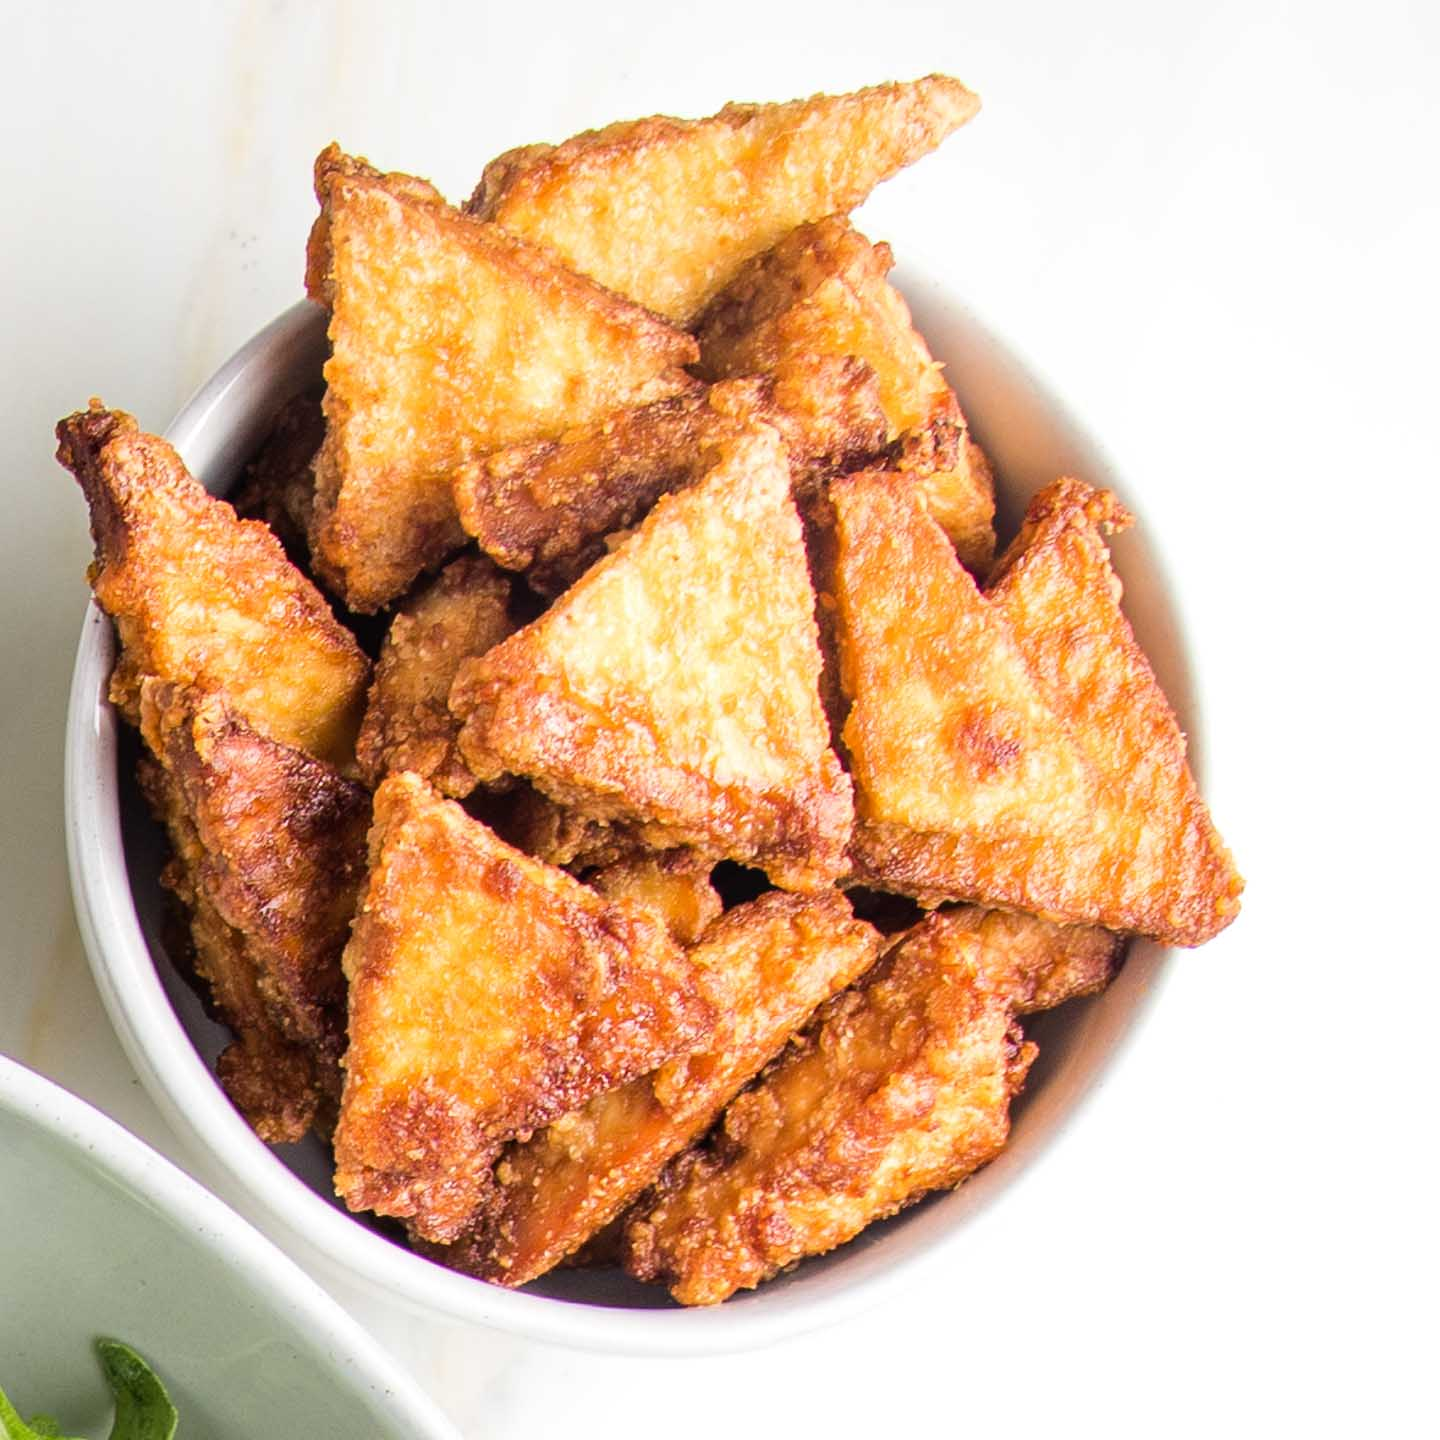 small white bowl filled with crispy baked tofu triangles